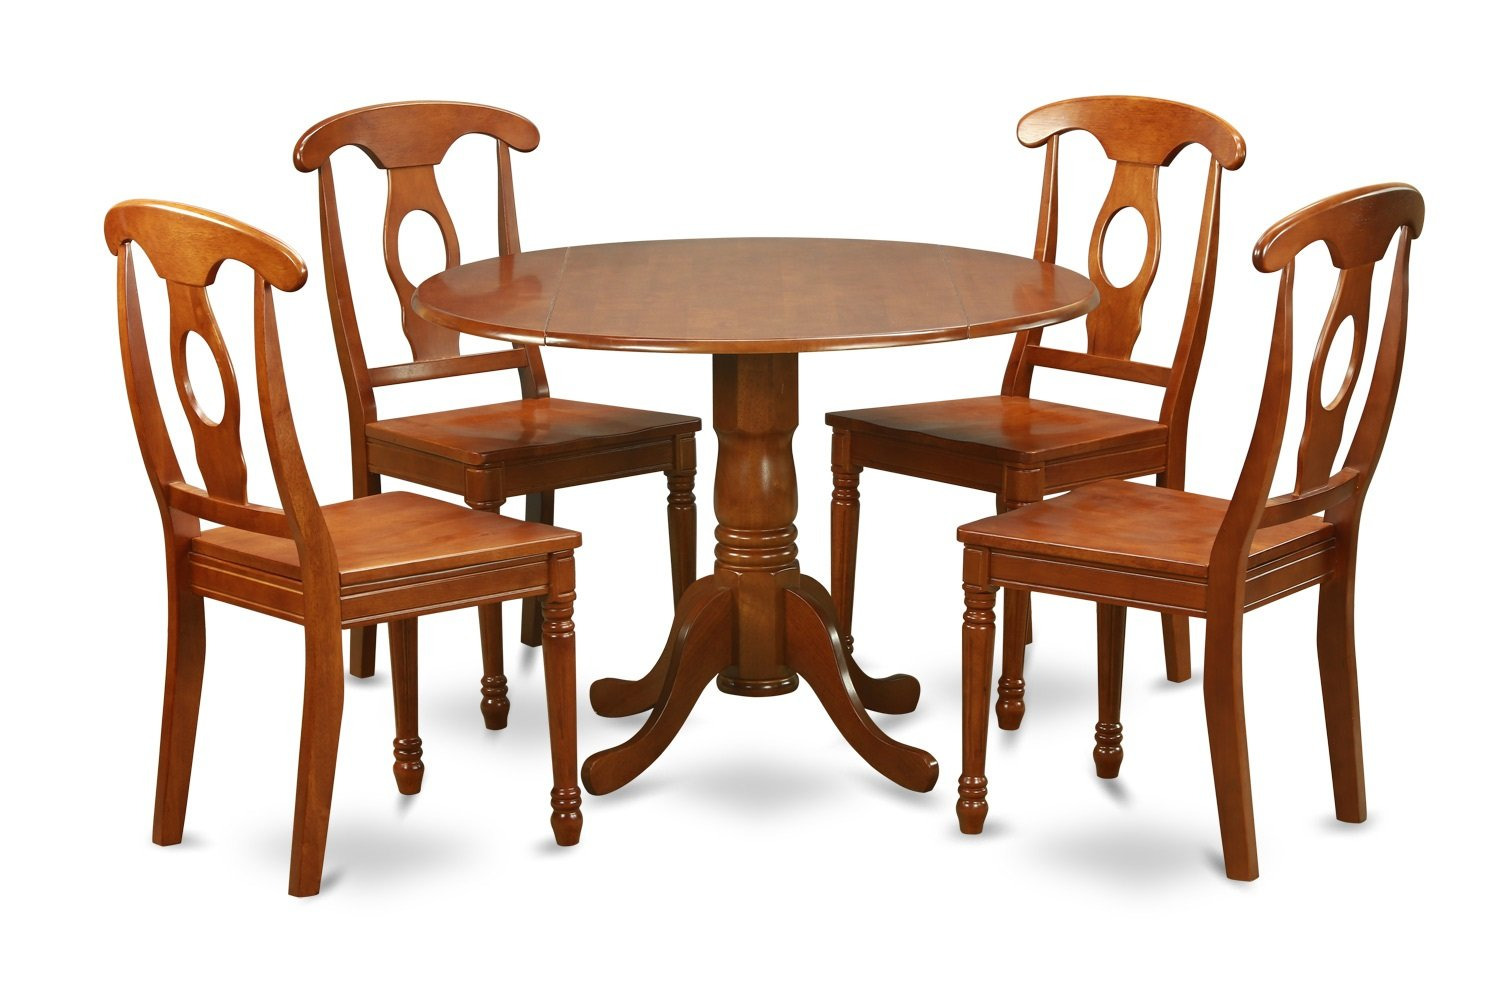 5pc Dublin Round Table W 2 Drop Leaves 4 Napoleon Wood